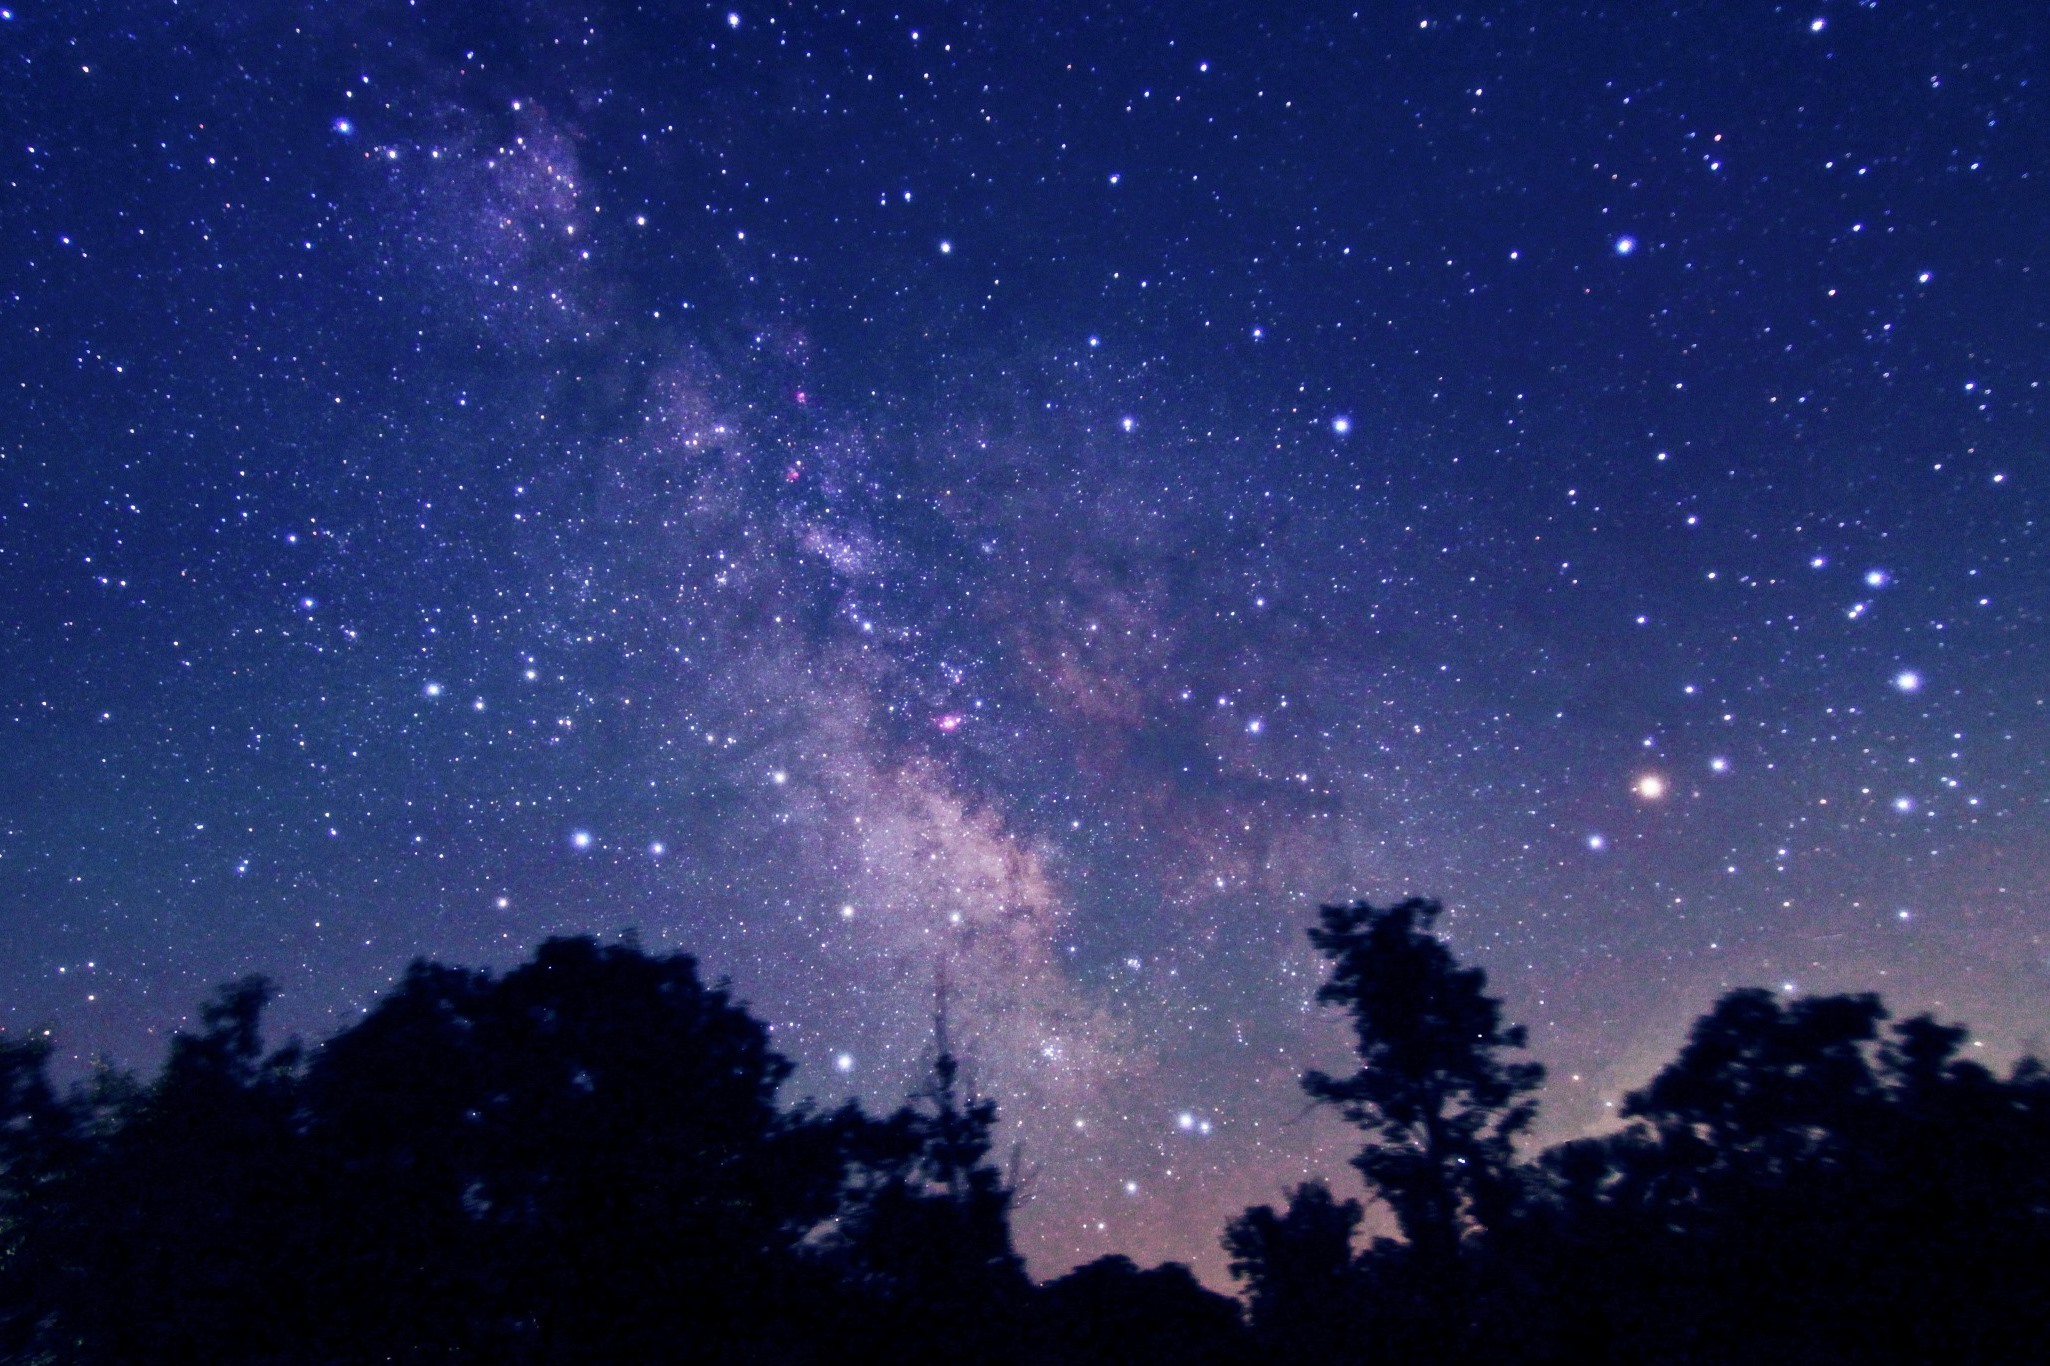 Have You Seen The Night Sky Lately?